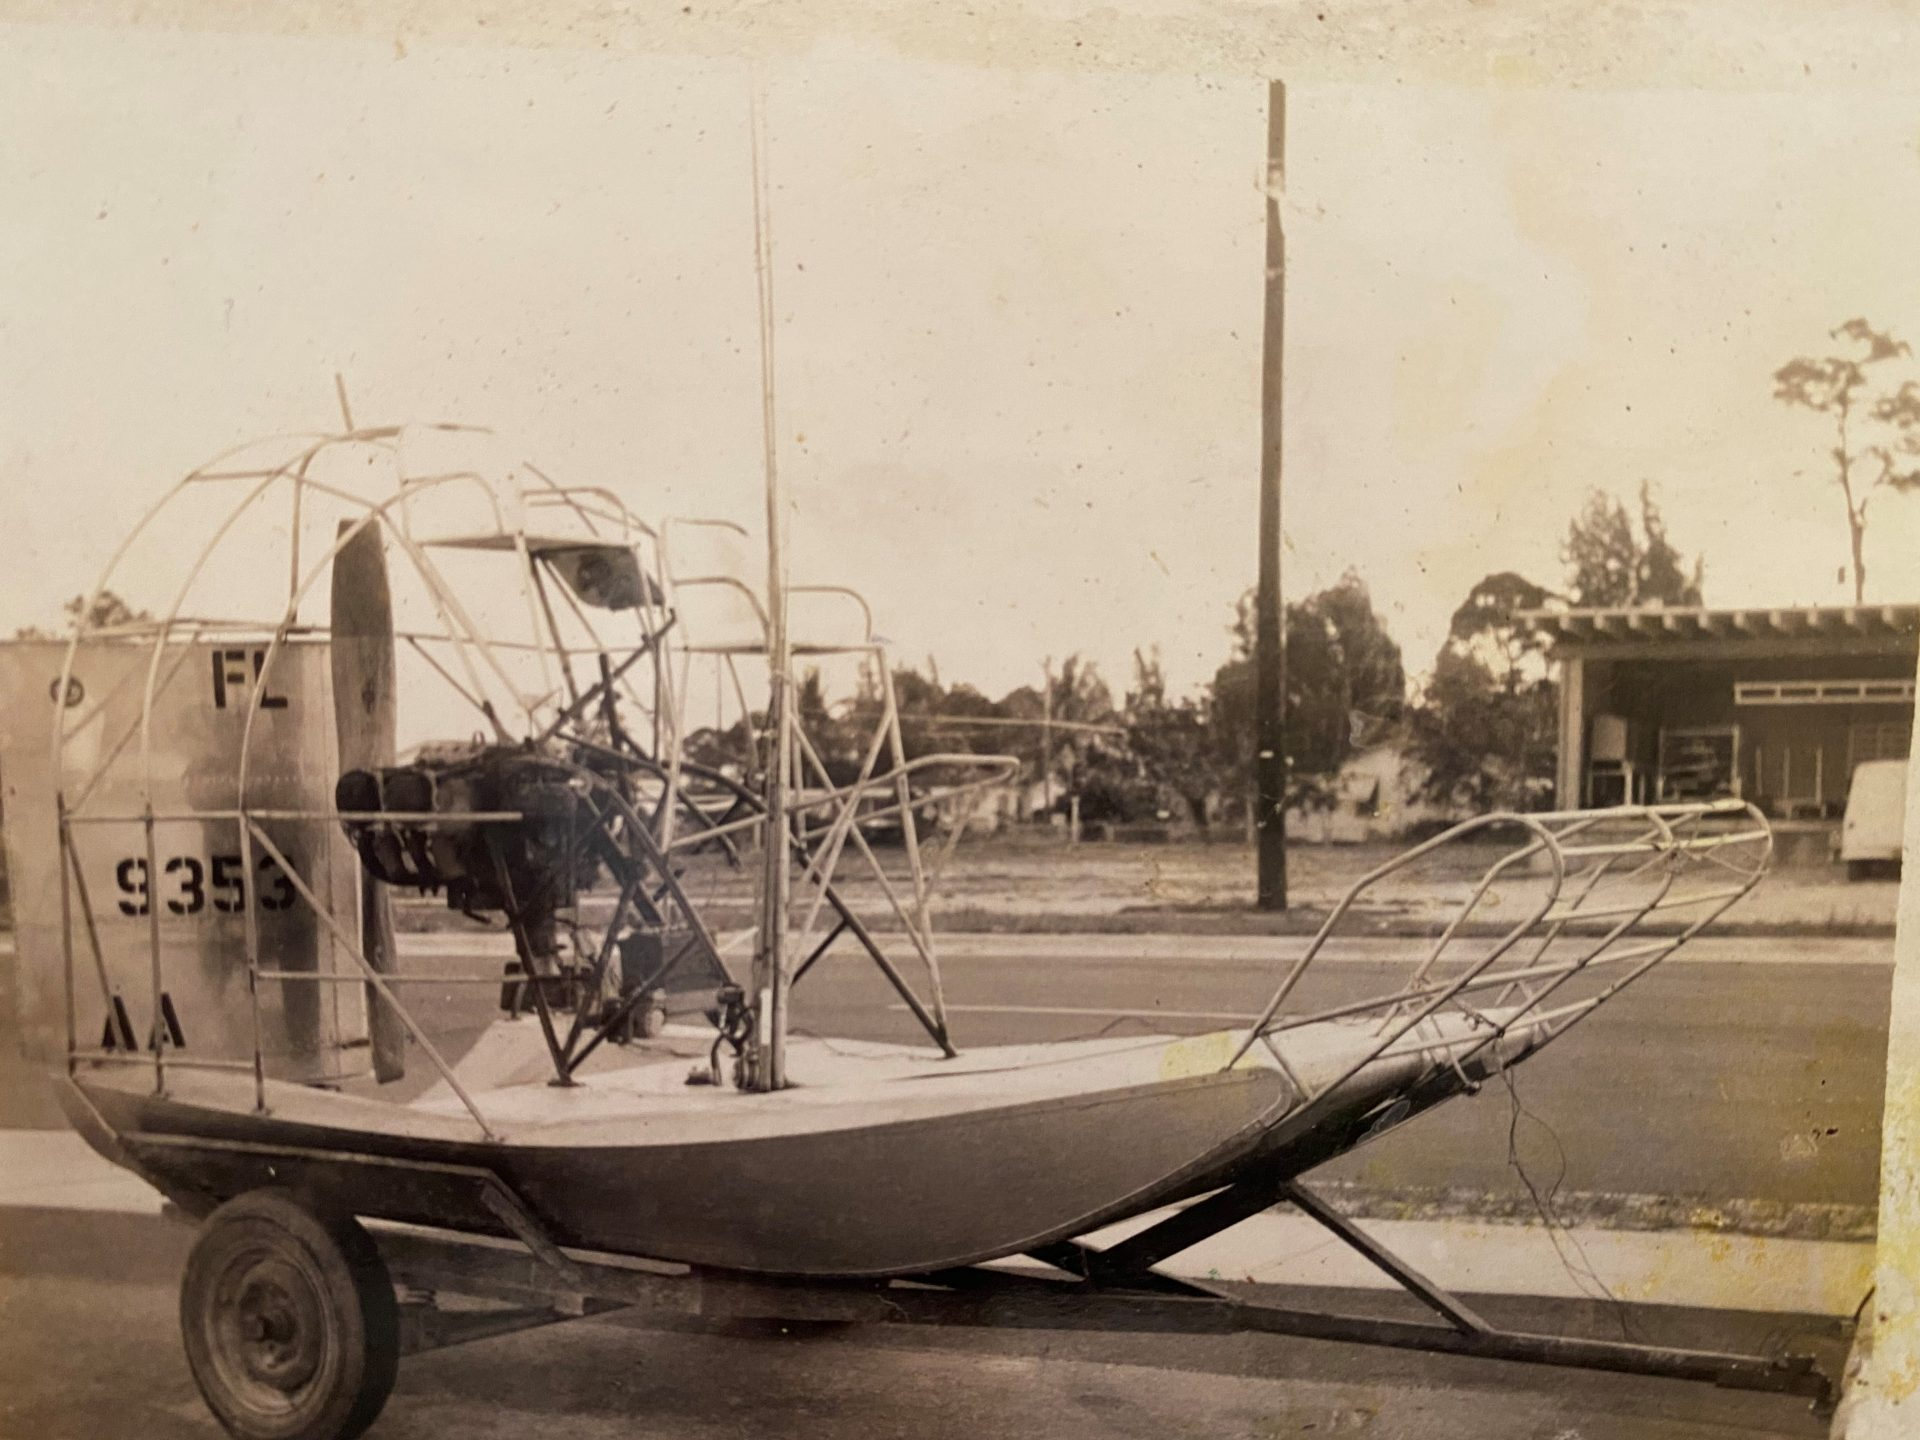 One of Bobby's early boats?